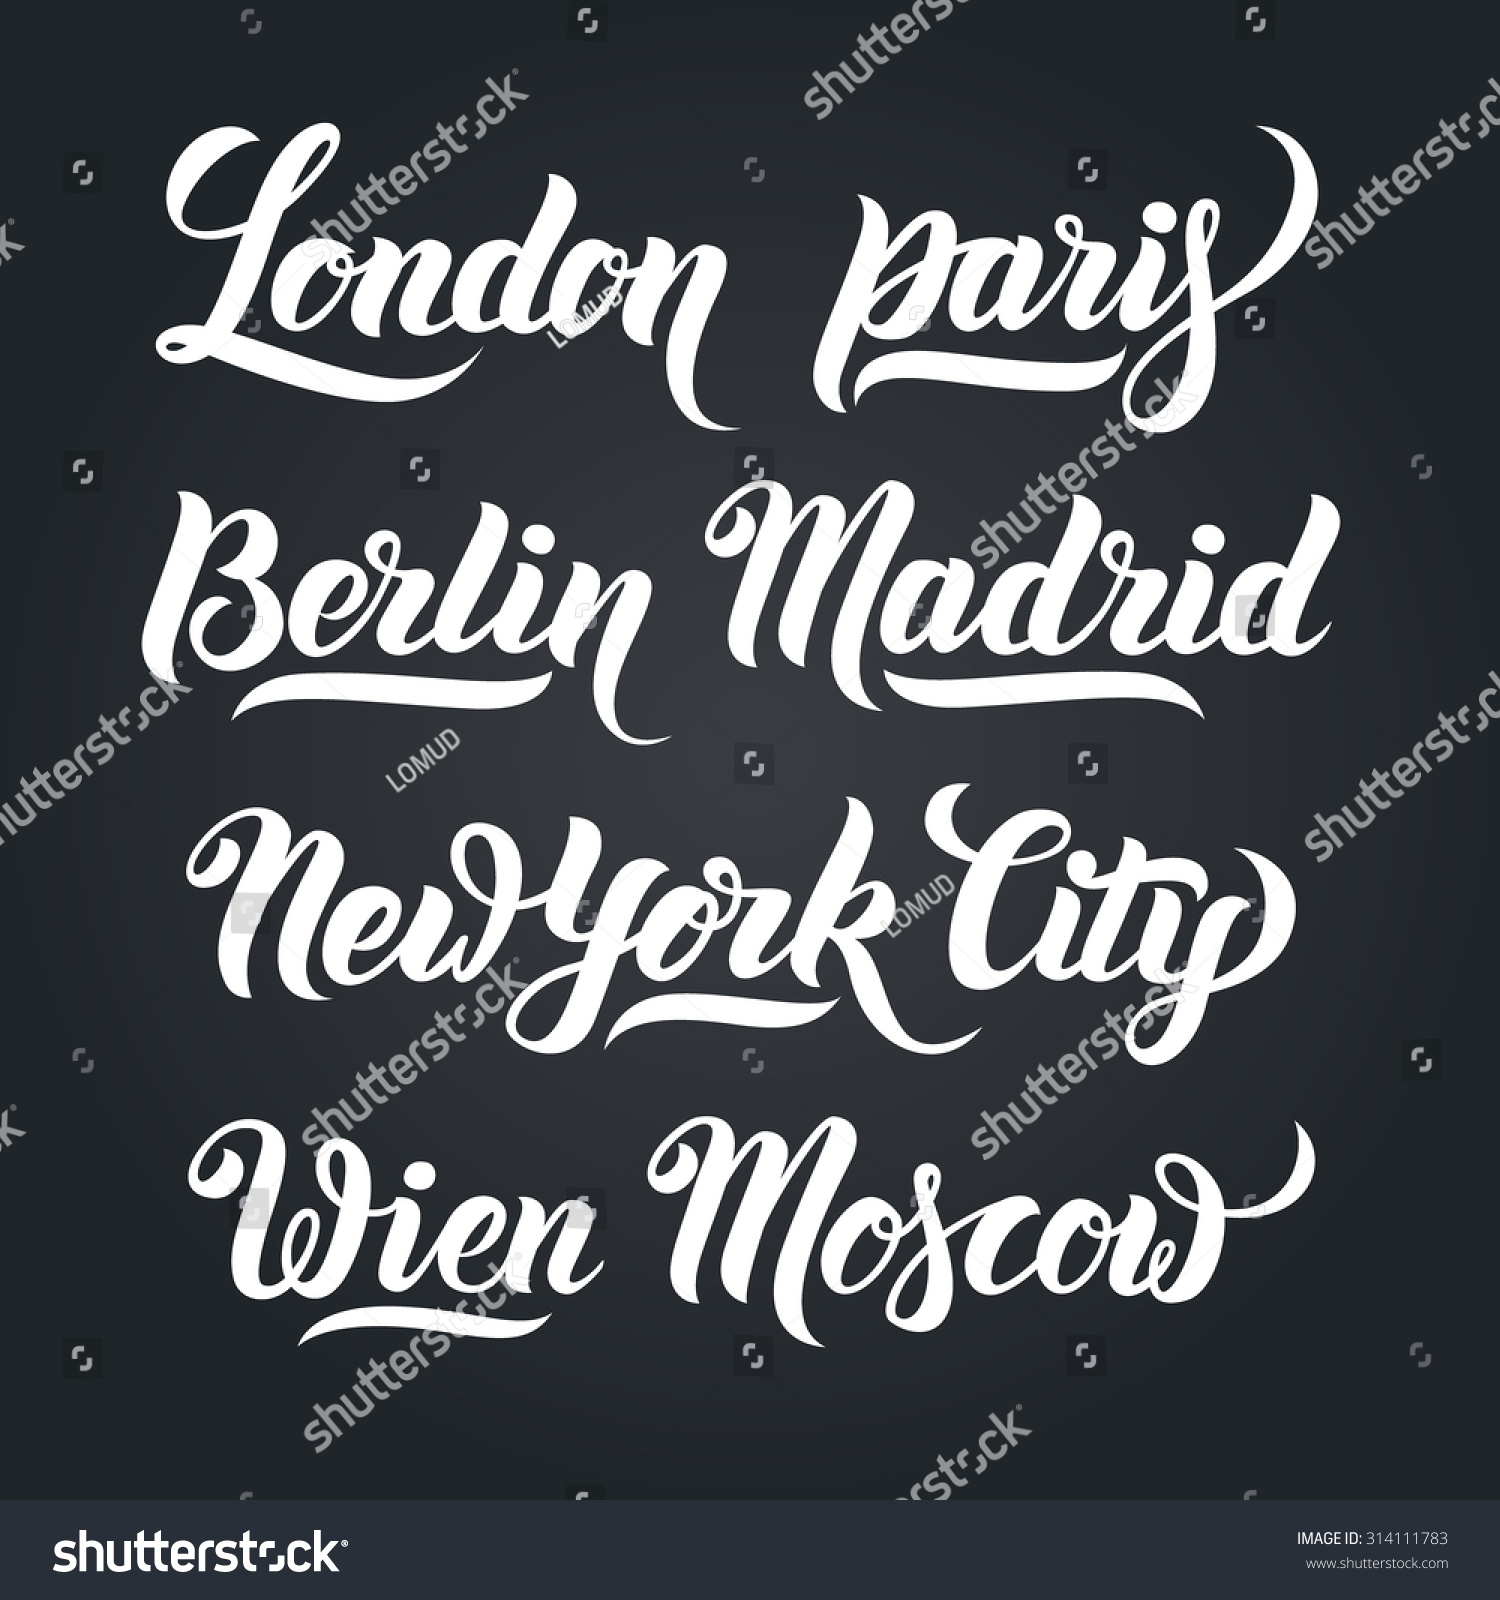 Different city names handlettering calligraphy collection